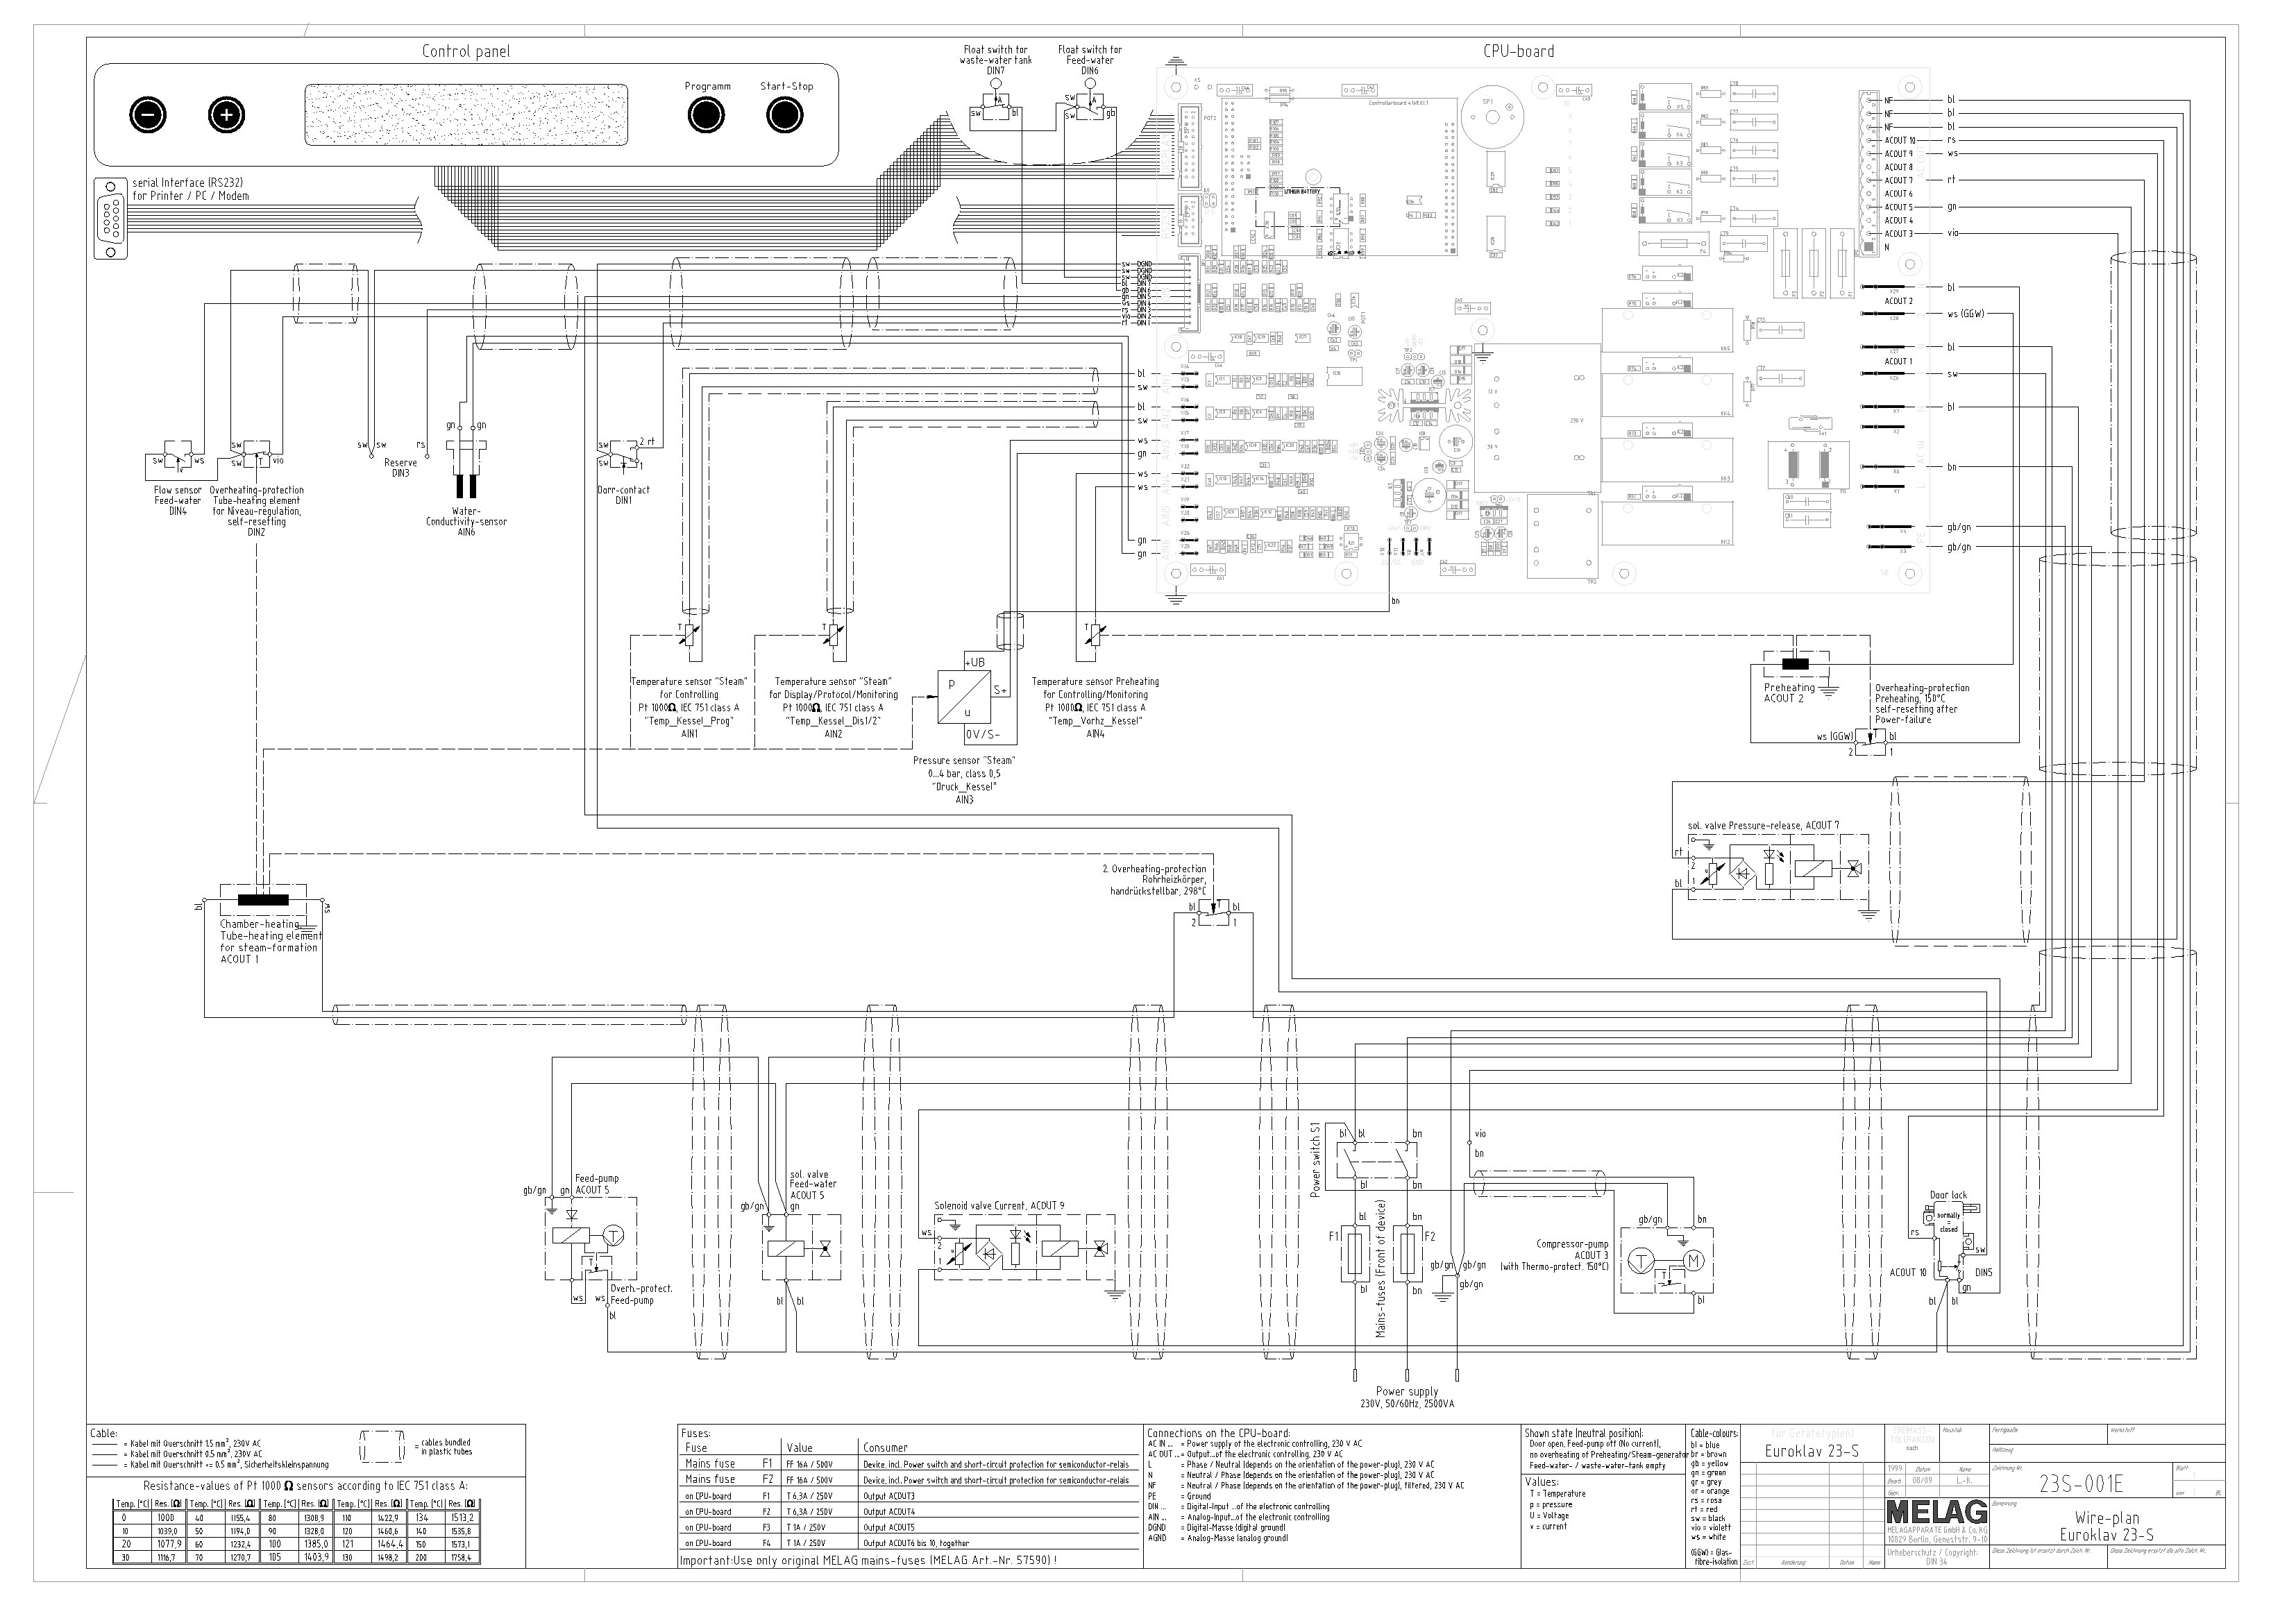 [XOTG_4463]  ZA_2580] Schematic Diagram Of A Hospital Get Free Image About Wiring Diagram  Free Diagram | Hospital Wiring Circuit Diagram |  | Hapolo Viewor Vira Mohammedshrine Librar Wiring 101